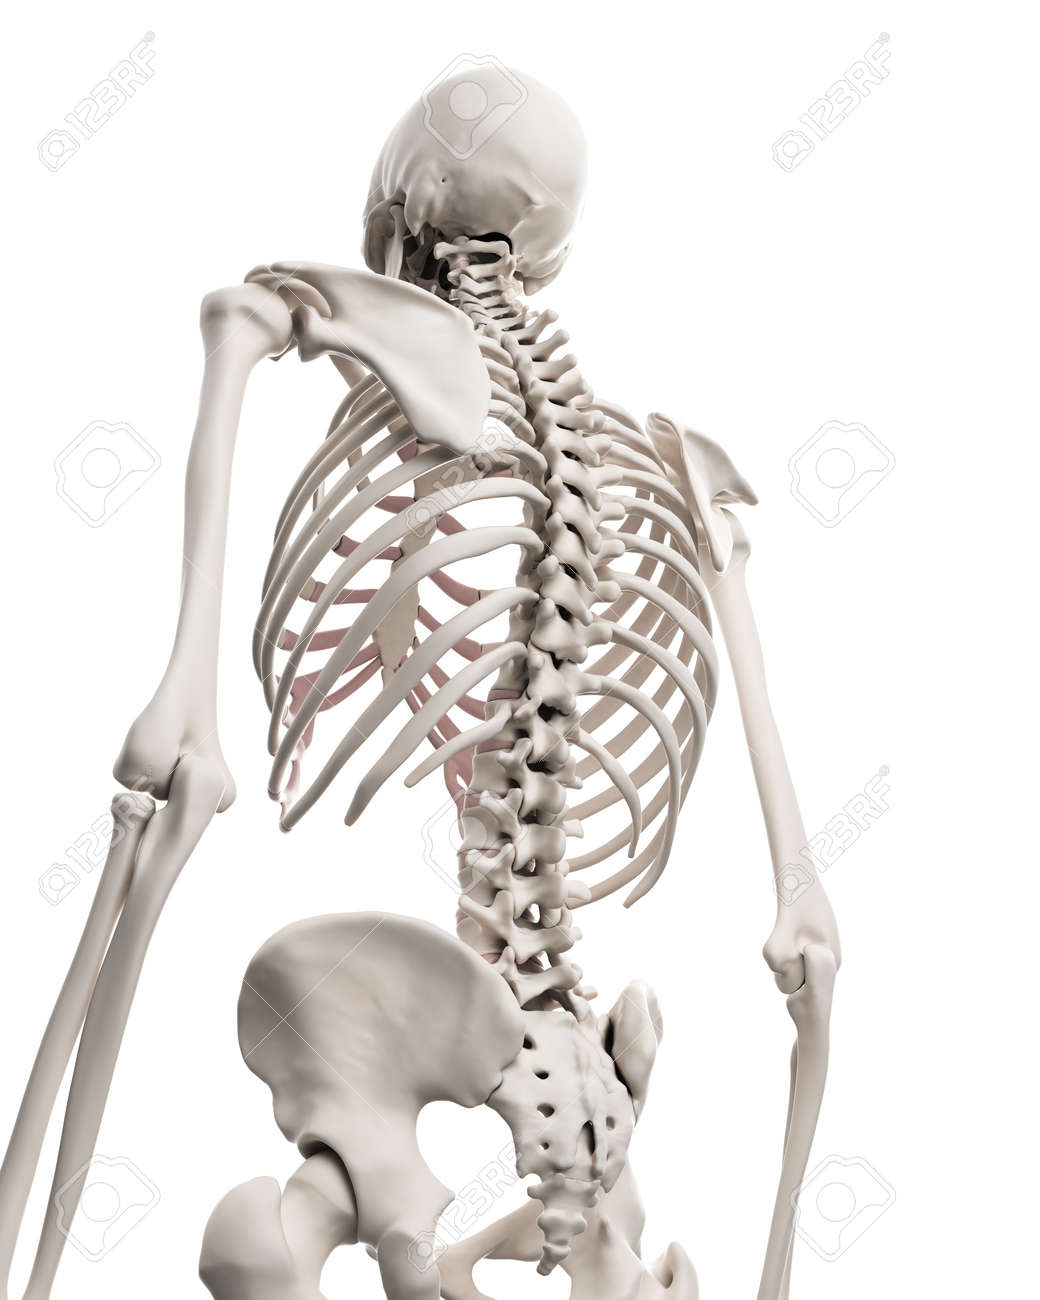 Medically Accurate Illustration Of The Skeletal System - The.. Stock ...